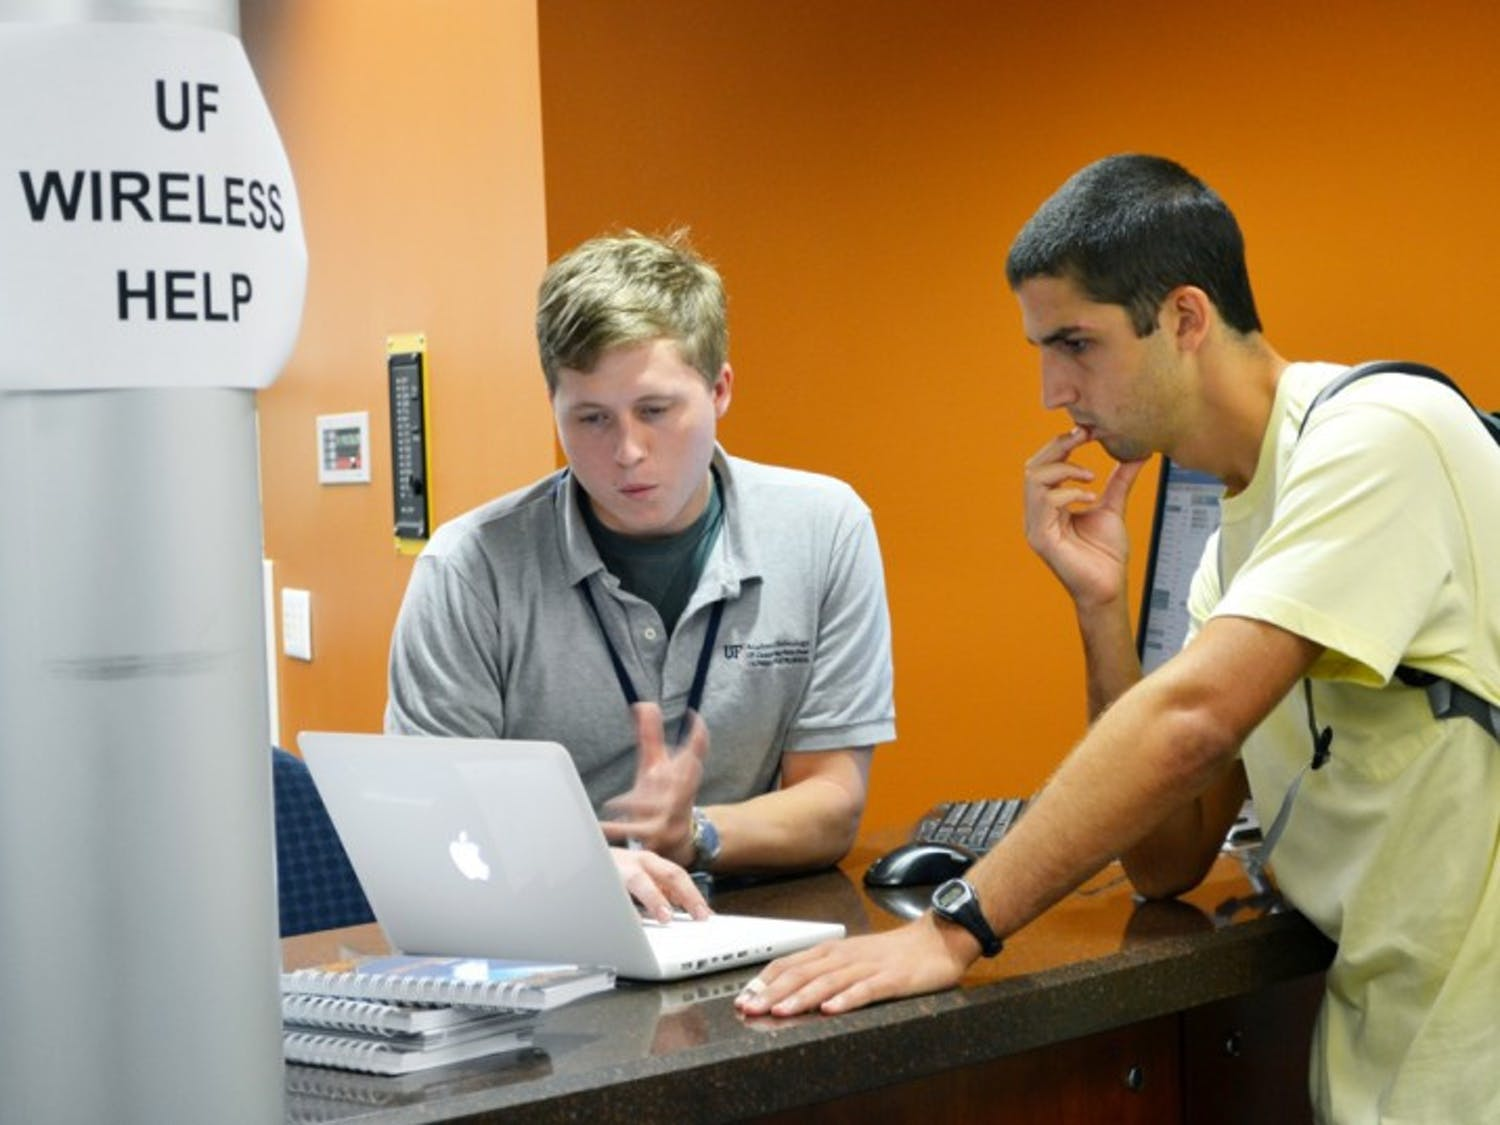 Todd Lowen, a 20-year-old telecommunication sophomore, gets help from Kellen Denny, a Computing Help Desk associate, on Thursday. Lowen had problems with his MacBook's wireless internet after moving to campus.